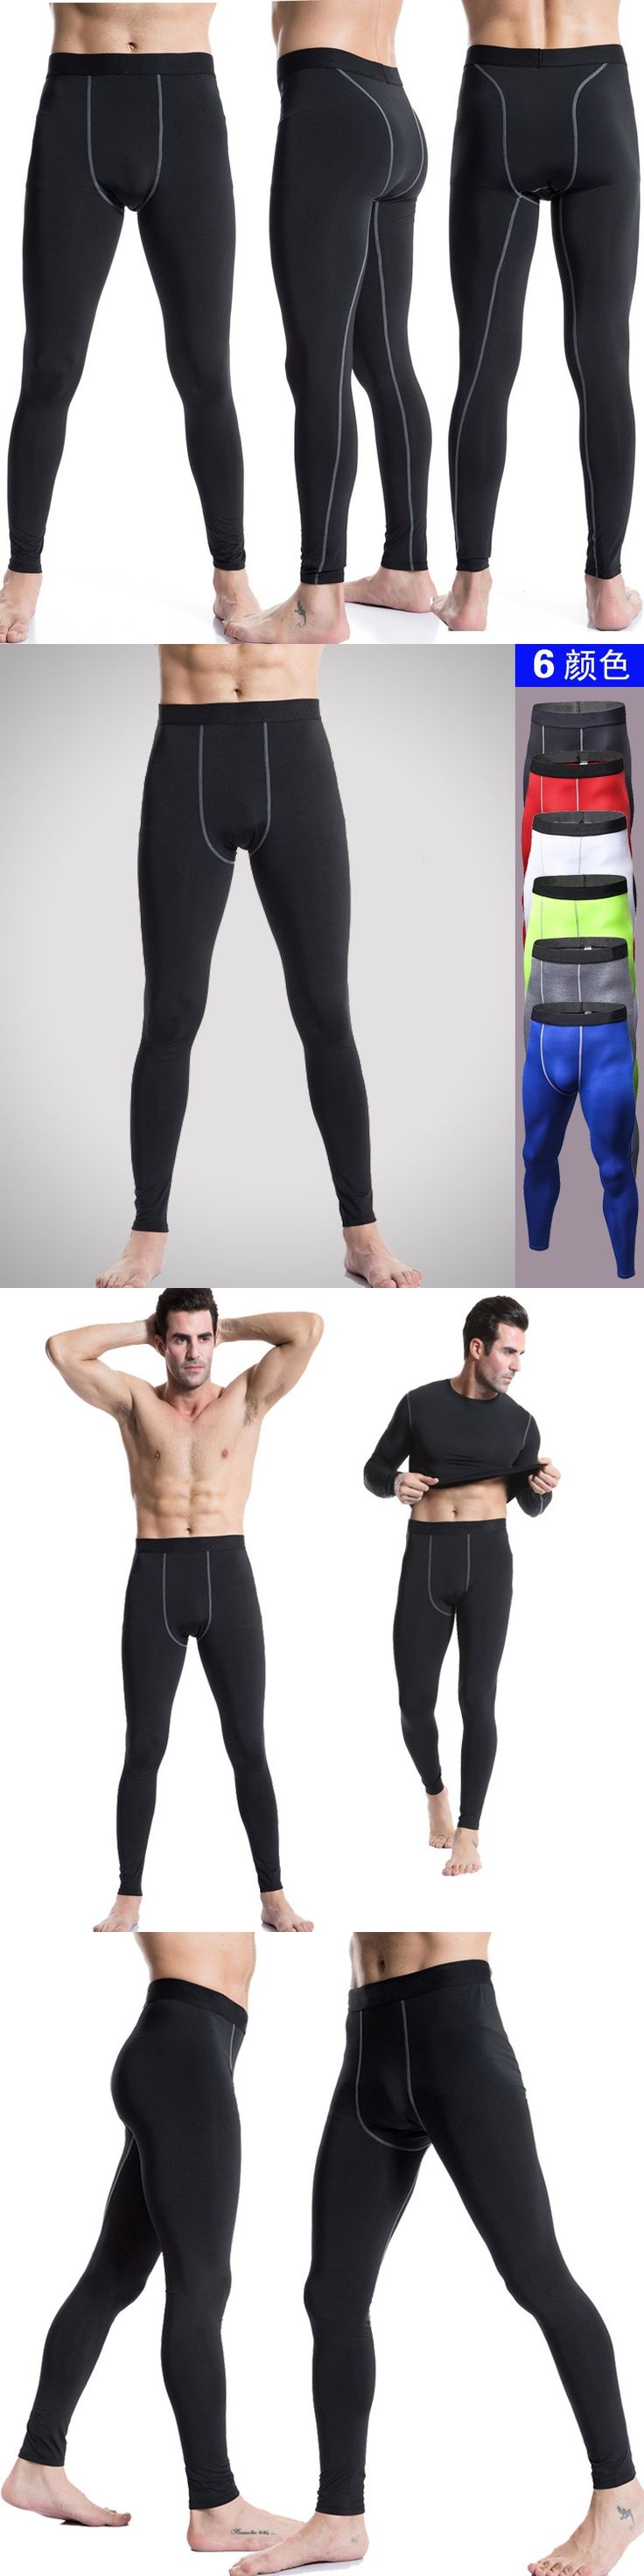 Men Compression Pants Skinny Sweatpants For Men Fashion Leggings Men Jogger Men Fitness Gyms Pants Elastic Trousers